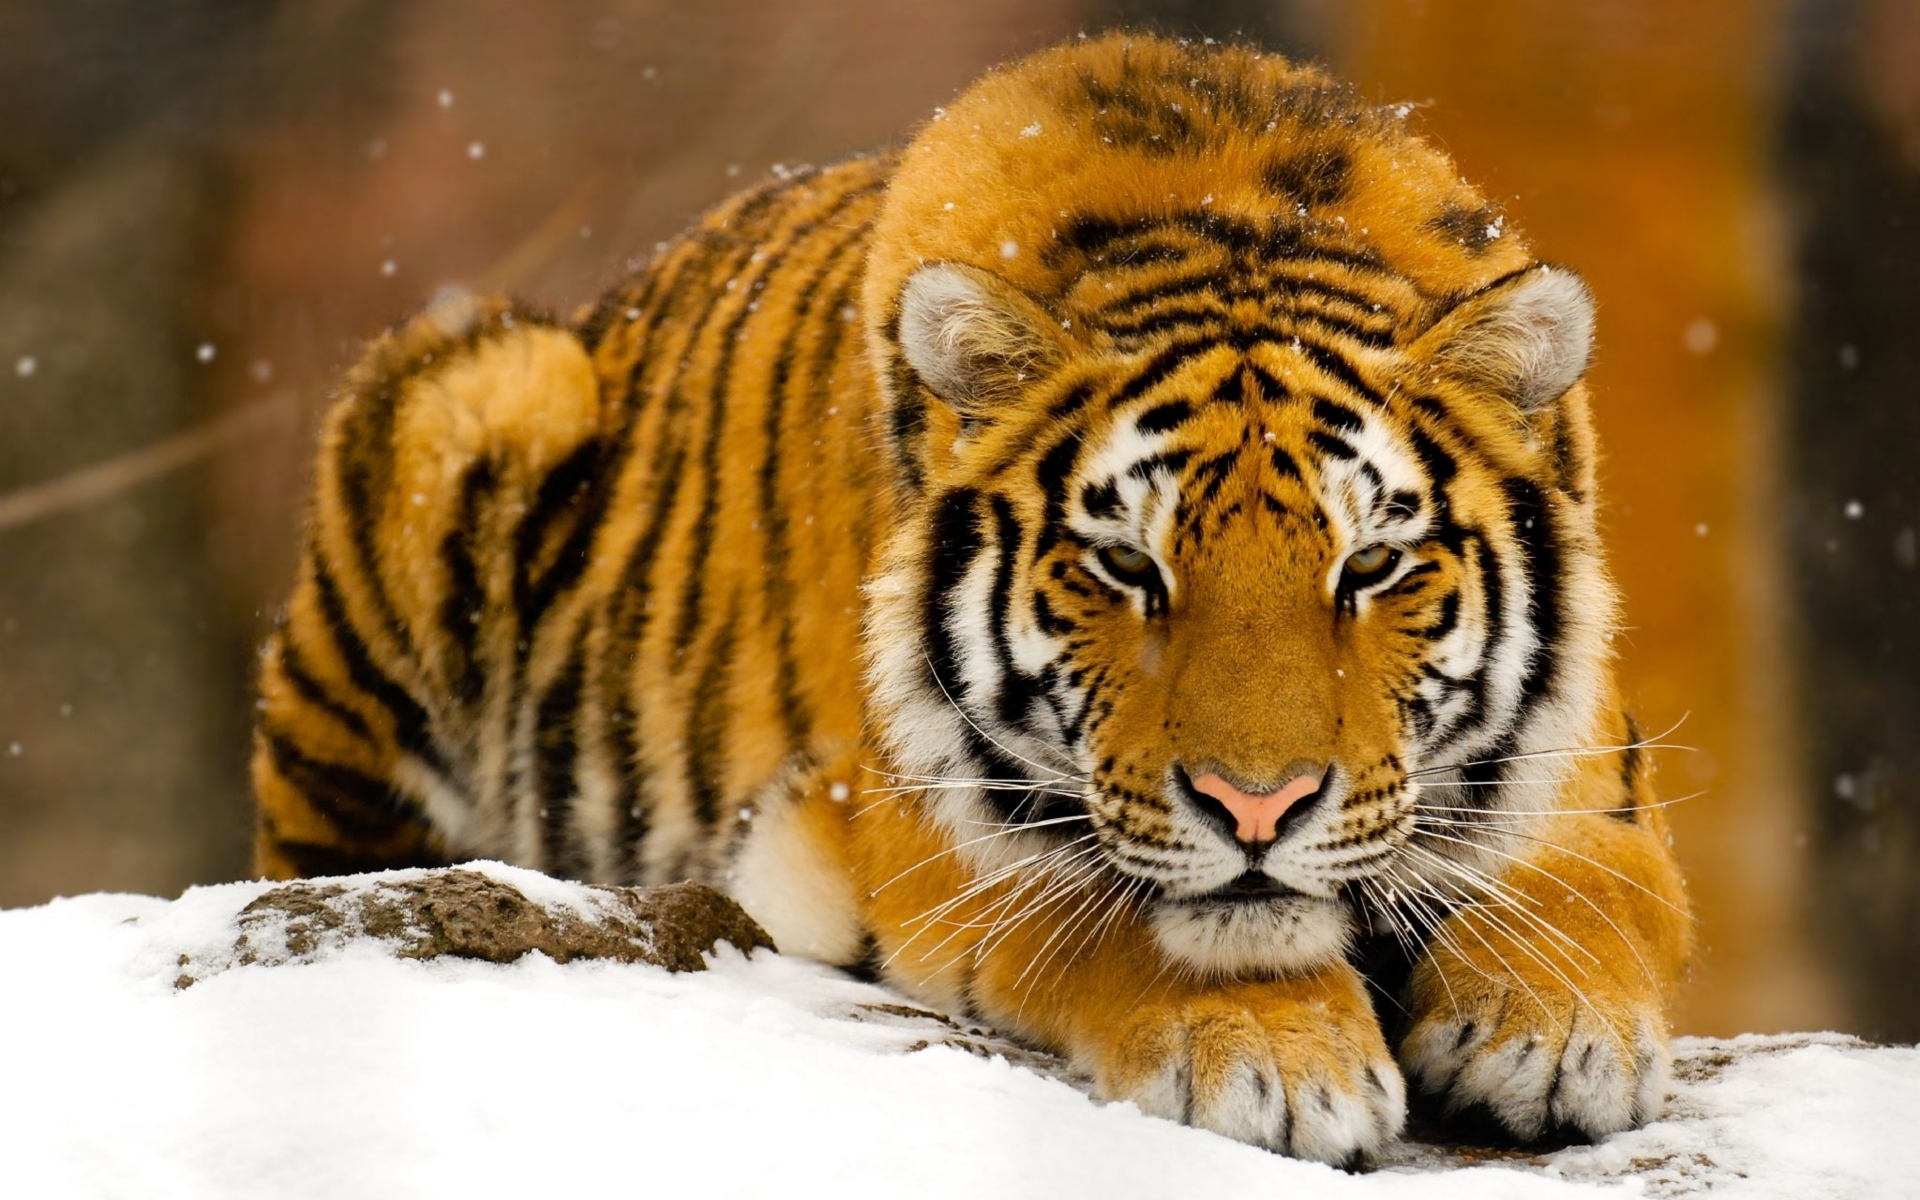 41459 download wallpaper Animals, Winter, Tigers screensavers and pictures for free